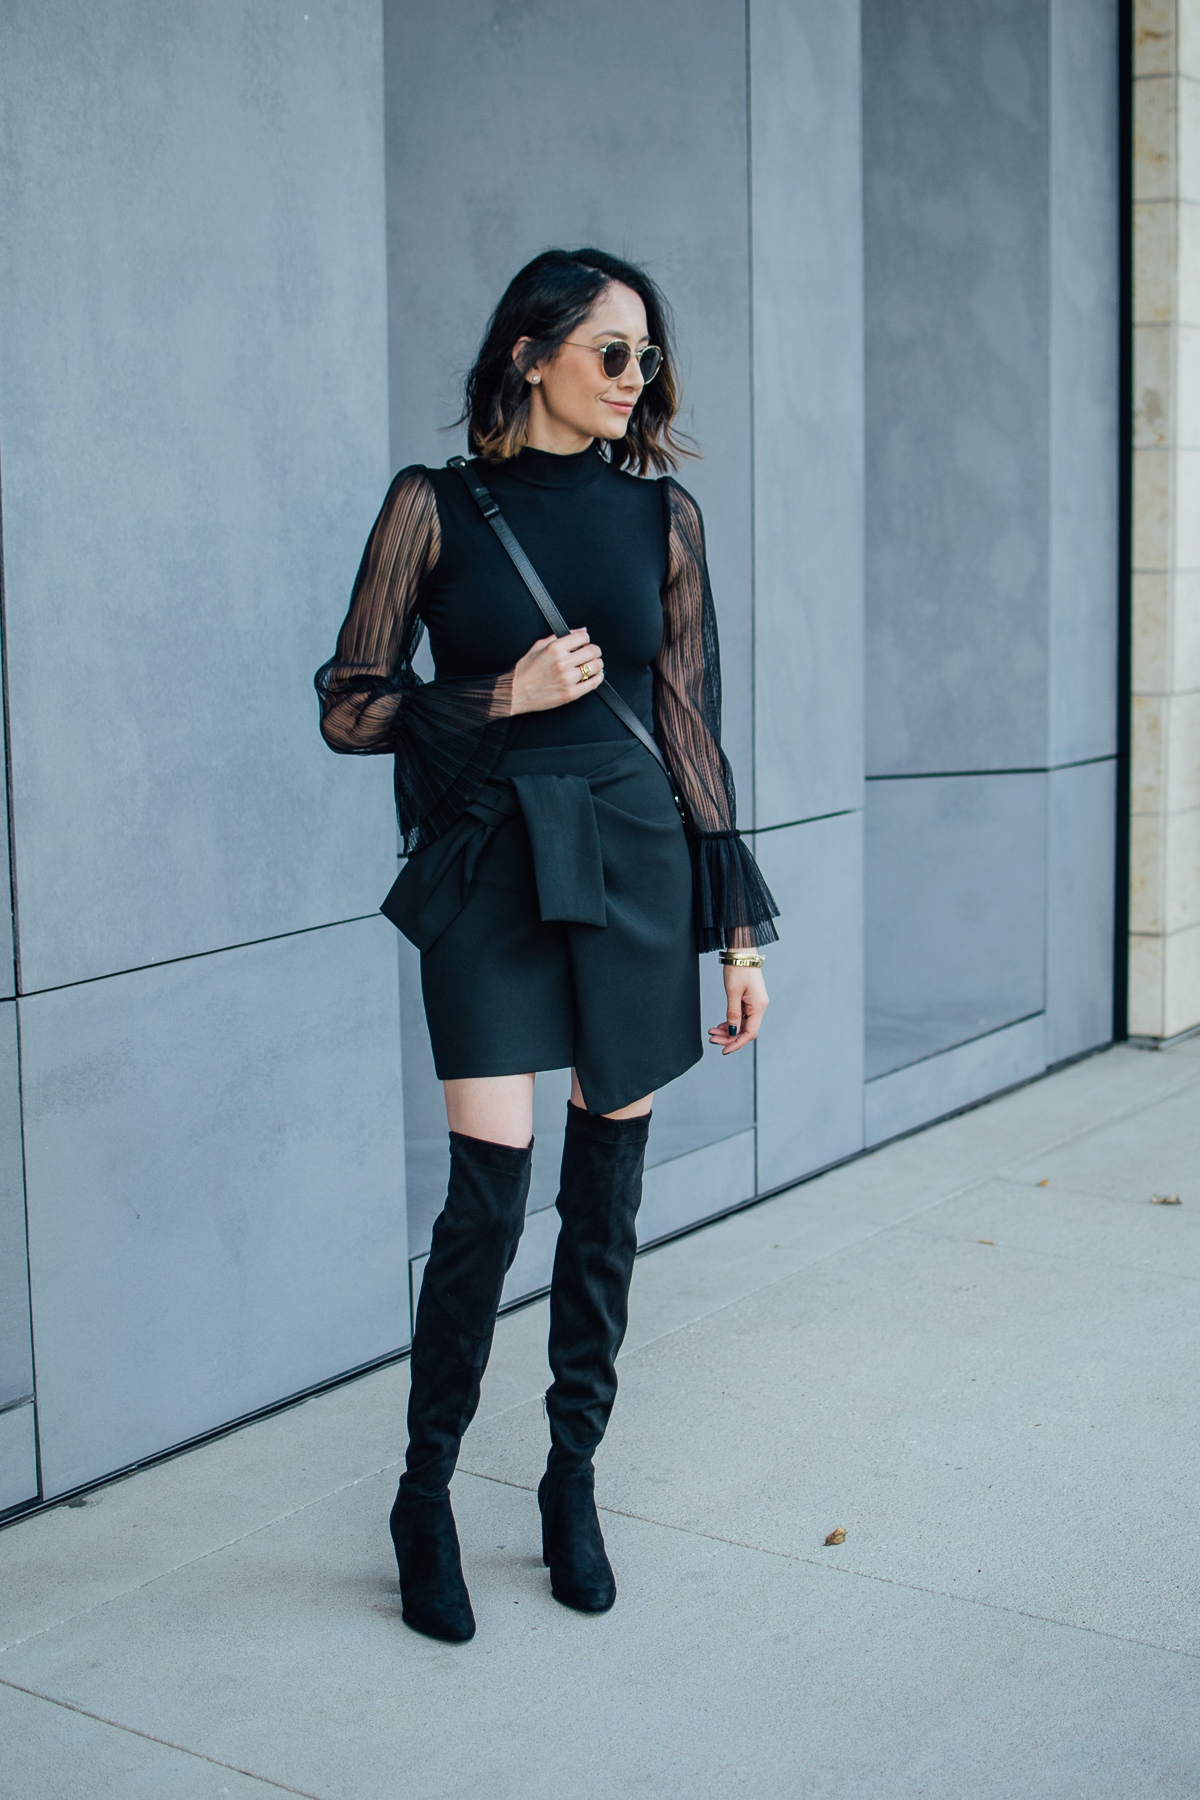 Daily Craving wearing a chic fall look with suede OTK boots and a black wrap skirt